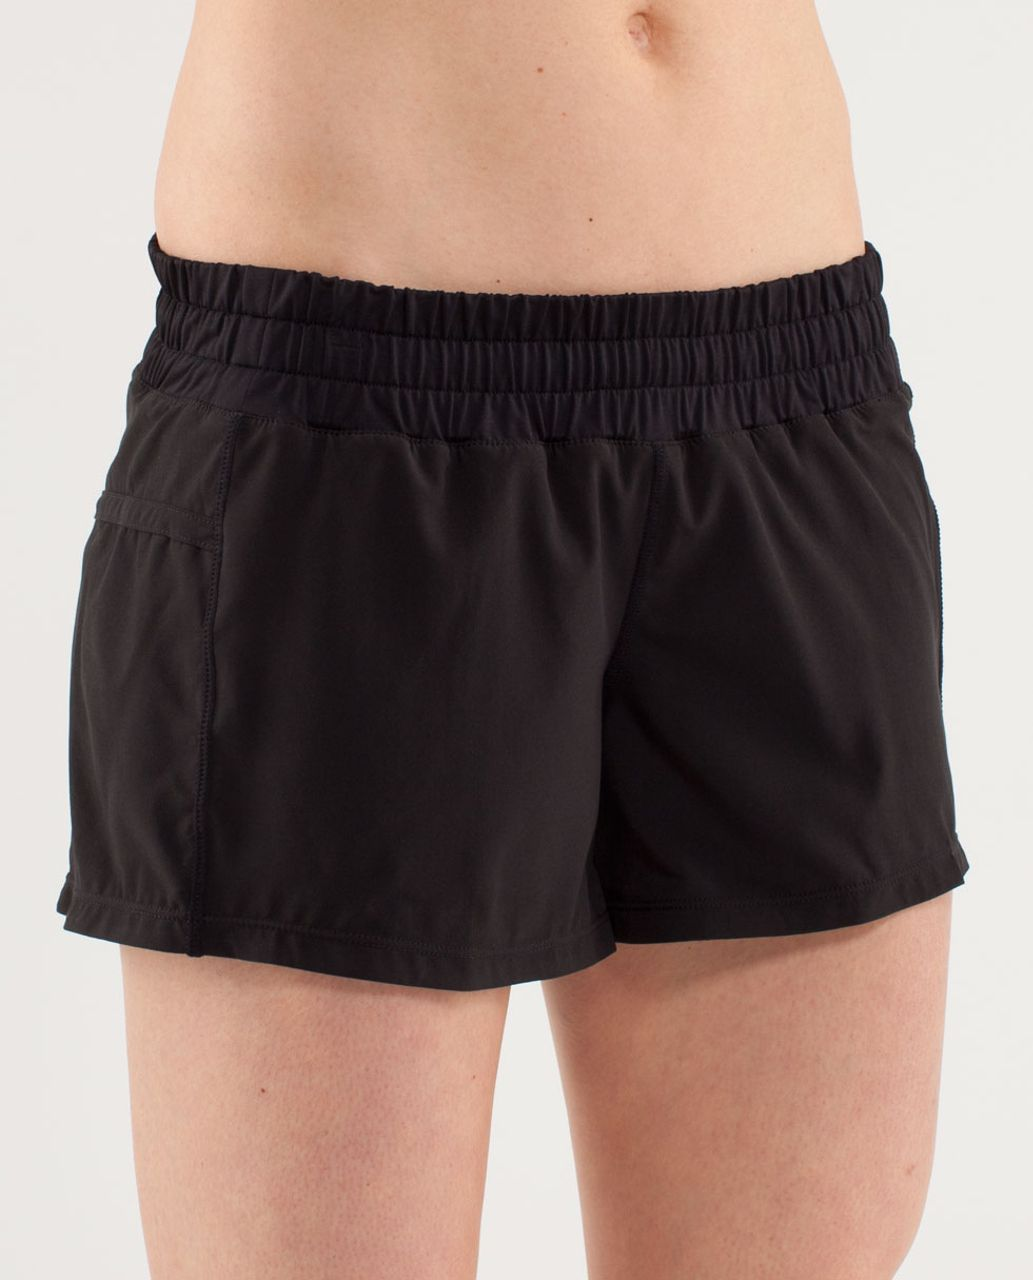 Lululemon Run:  Tracker Short II - Black